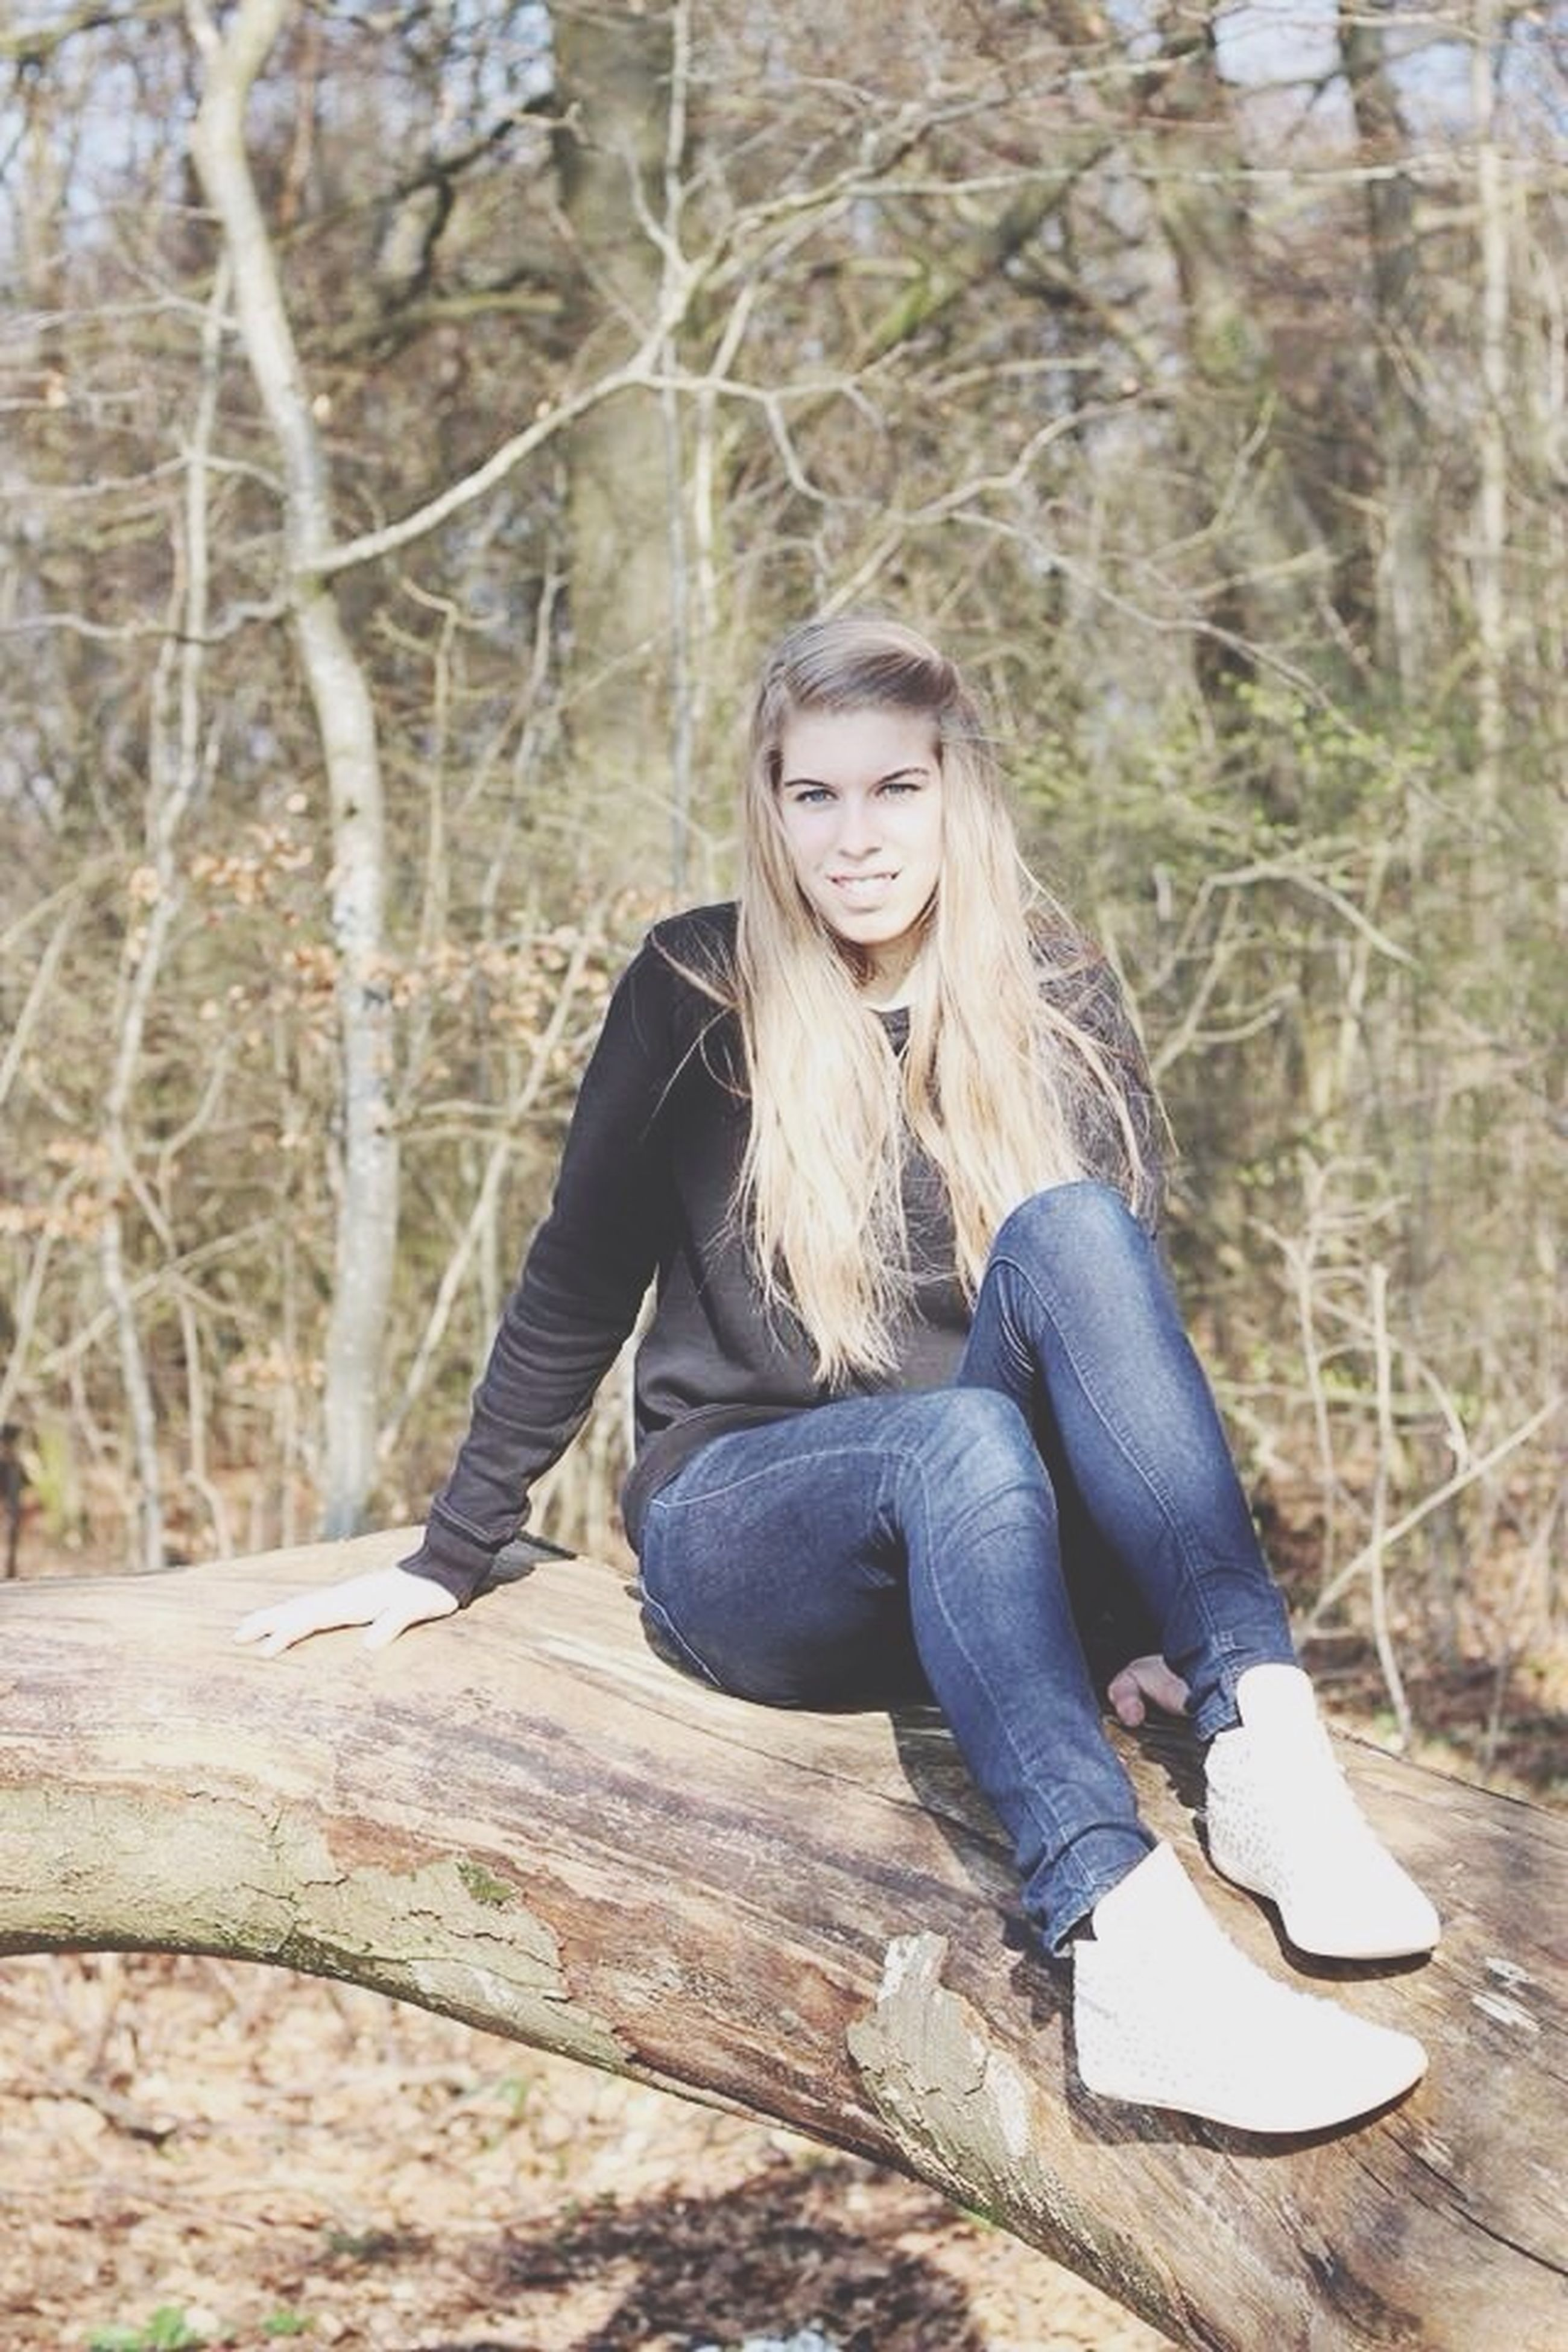 young adult, sitting, person, lifestyles, casual clothing, tree, young women, leisure activity, forest, full length, relaxation, portrait, looking at camera, front view, three quarter length, side view